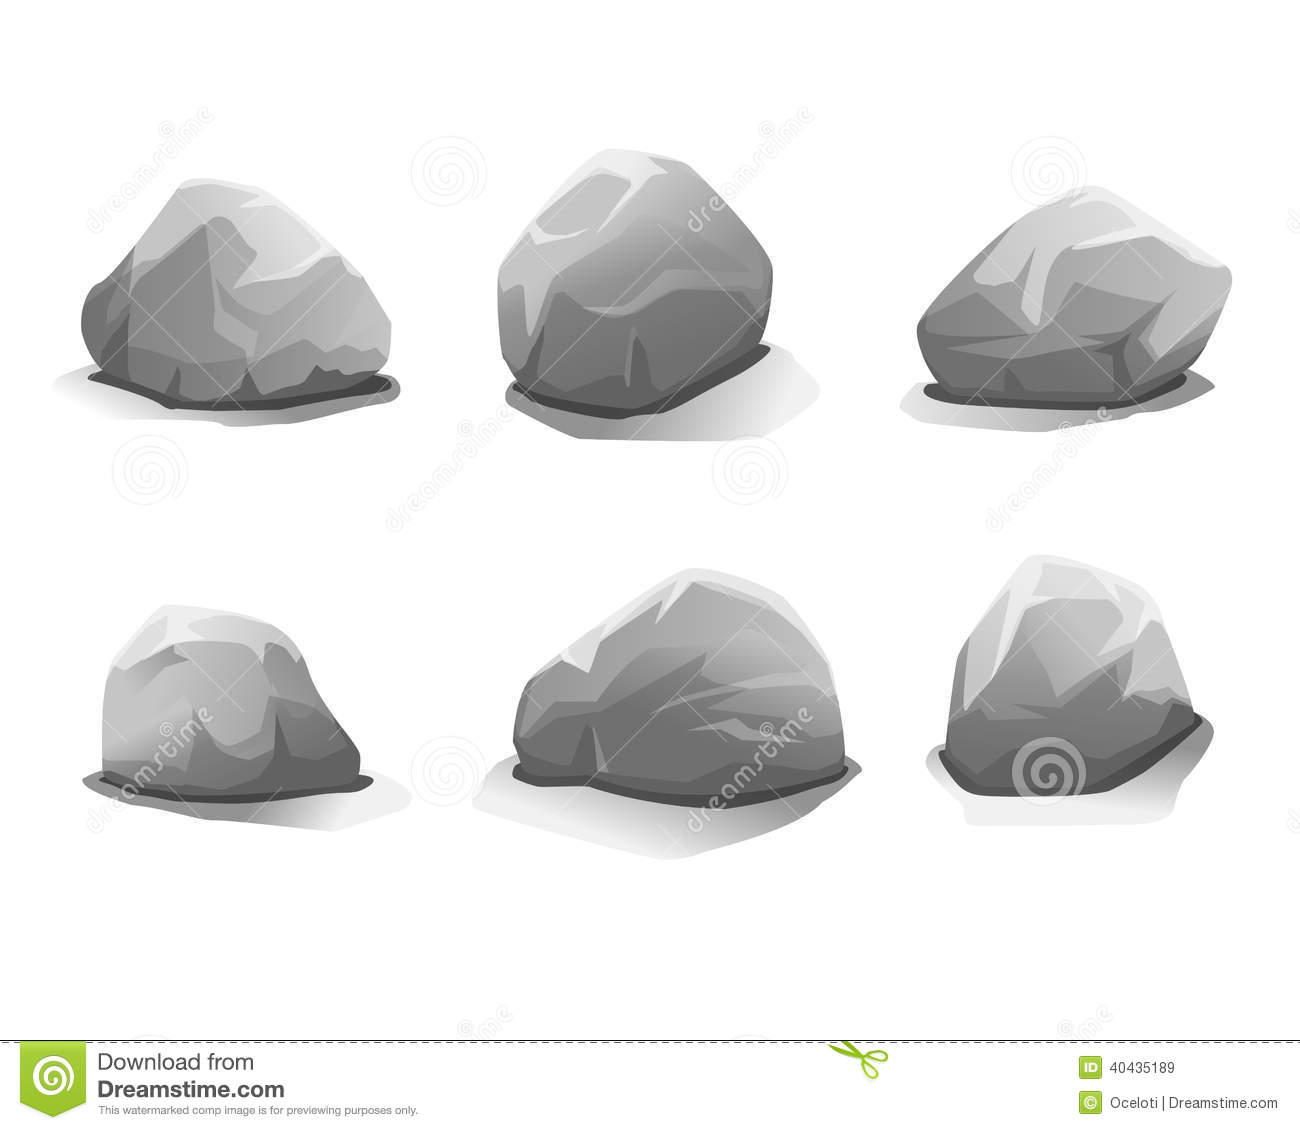 Boulder clipart vector. Rubble pencil and in